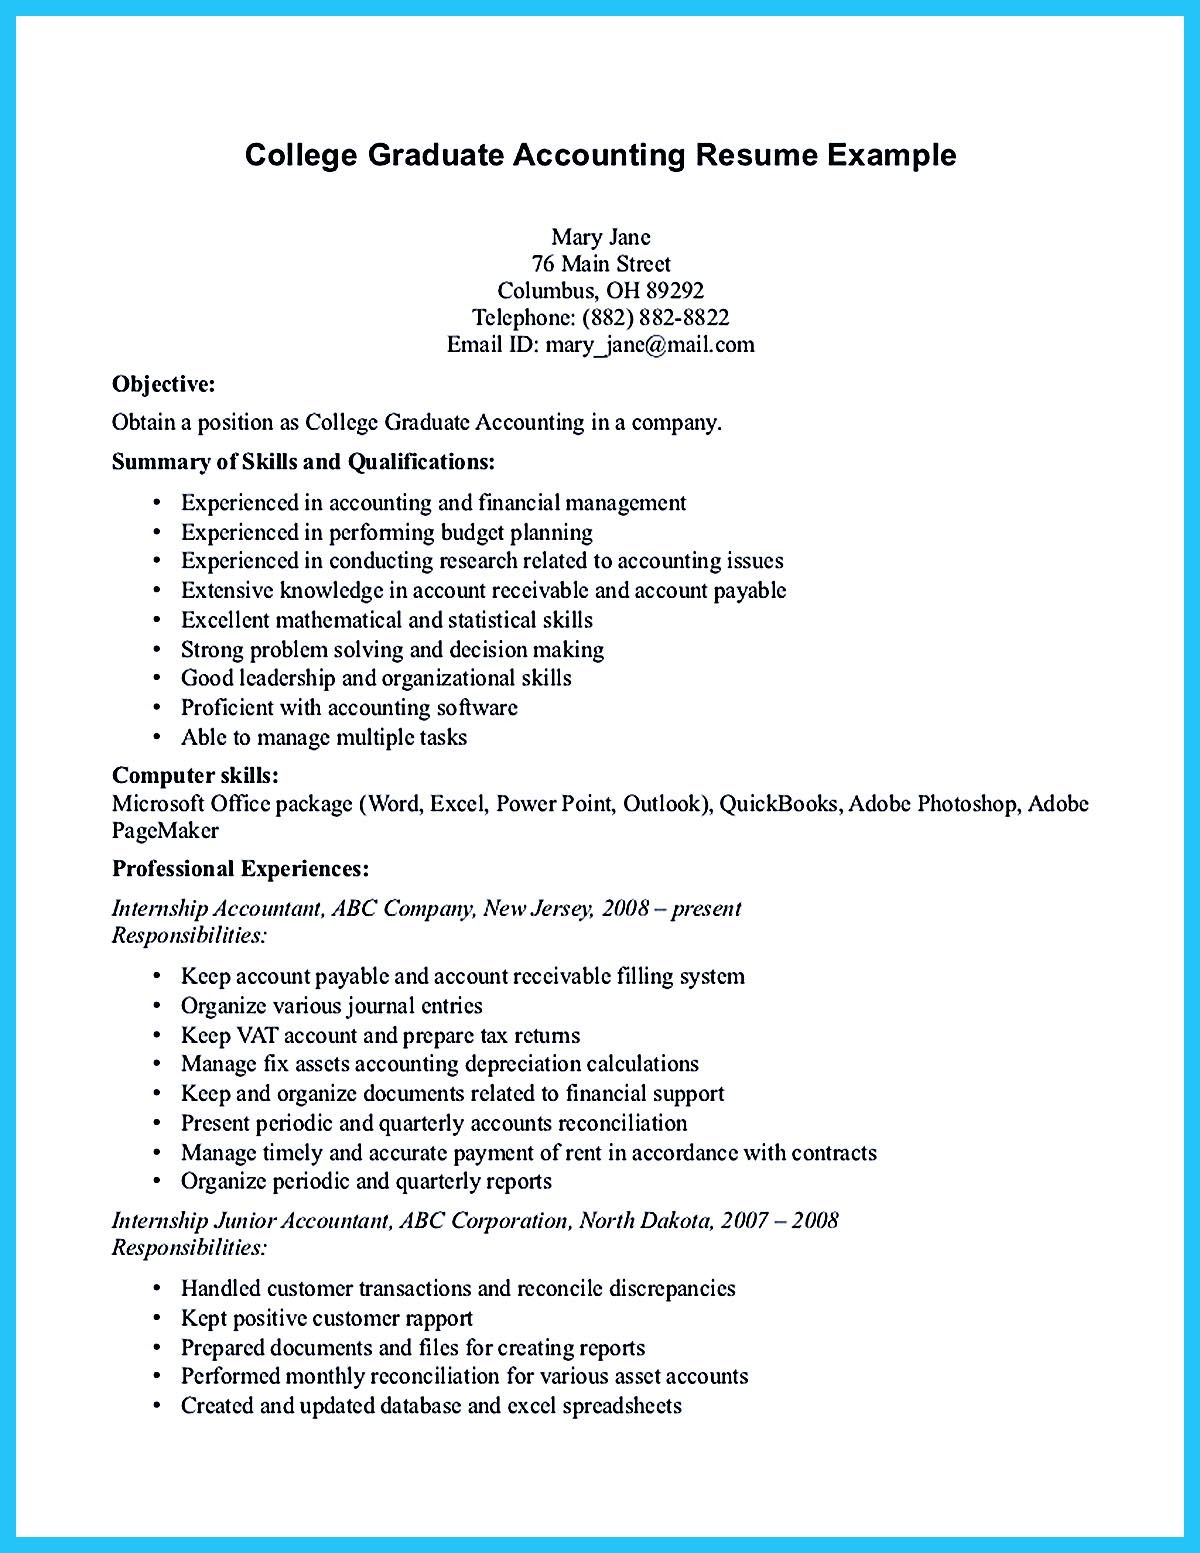 Accountant Resume Accounting Student Resume Here Presents How The Resume Of